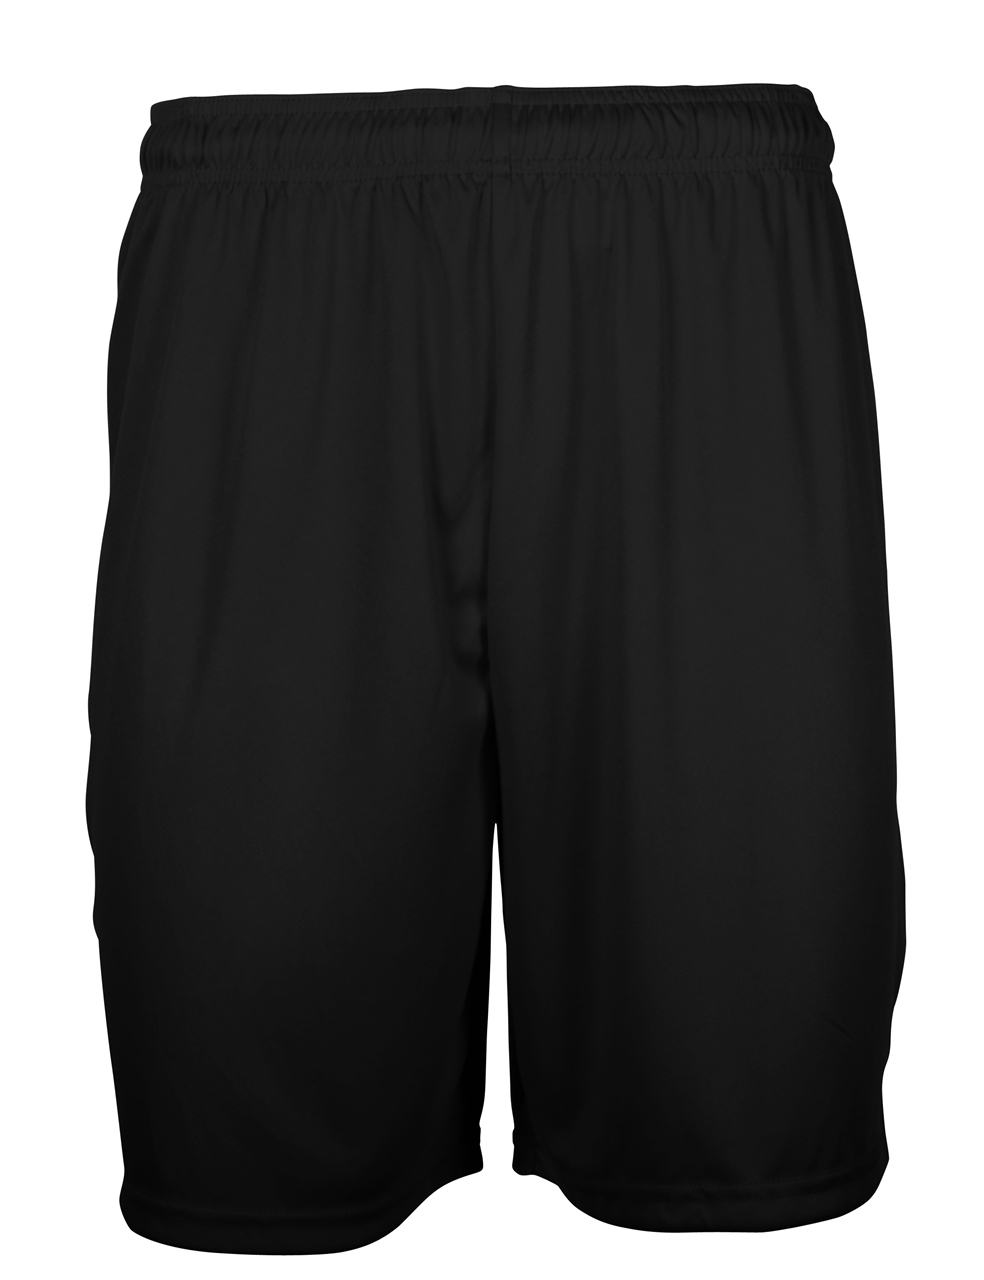 Picture of N3 Sport Dry Fit Youth Short